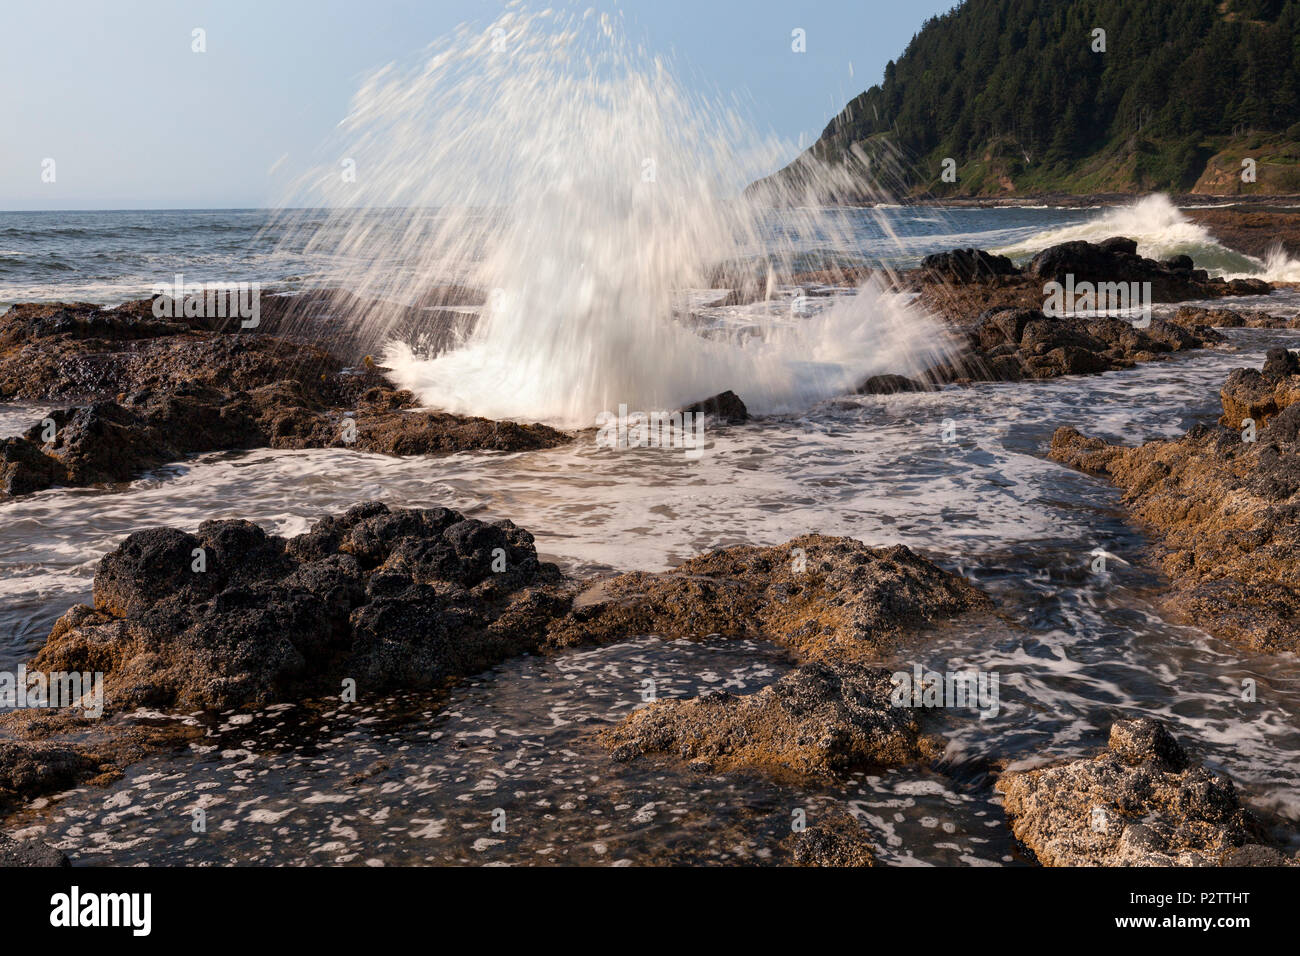 Water surges from Thor's Well at Cape Perpetua Scenic Area along Oregon's Central Coast south of Yachats. - Stock Image